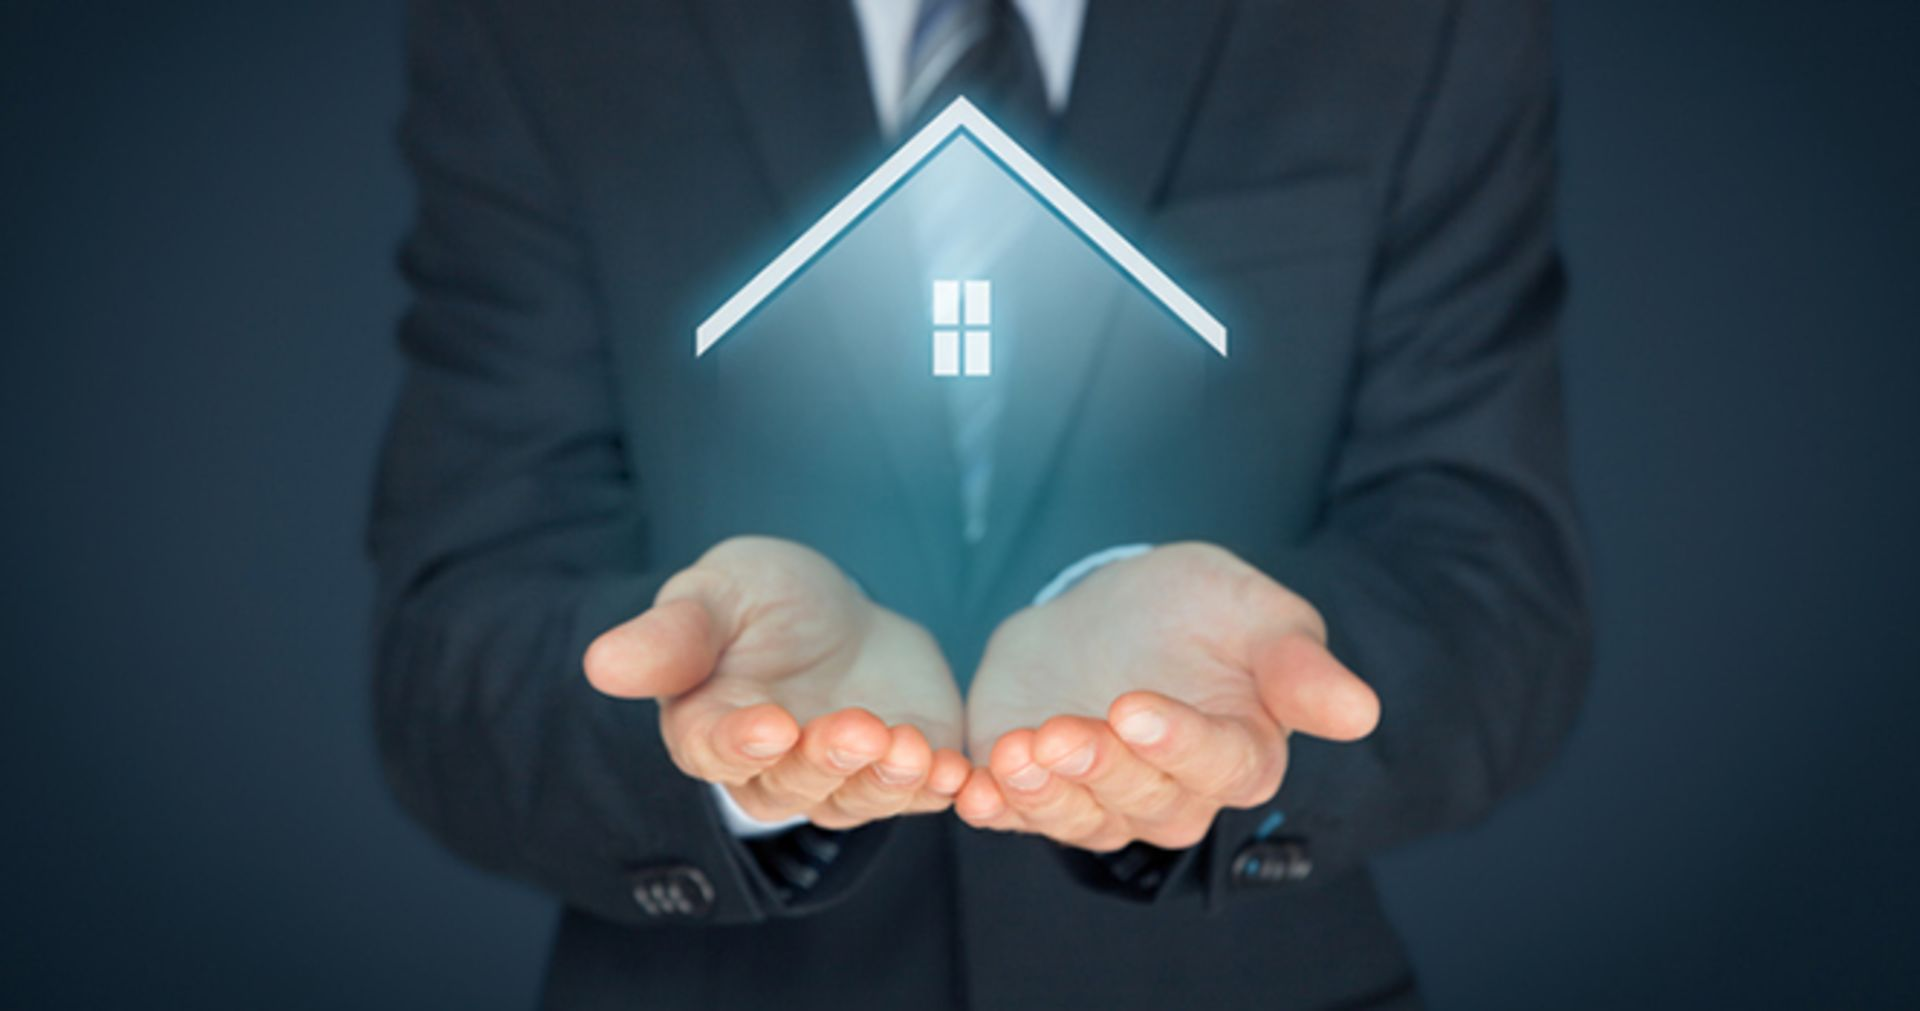 Survey: More People Feel Positive About Buying, Selling